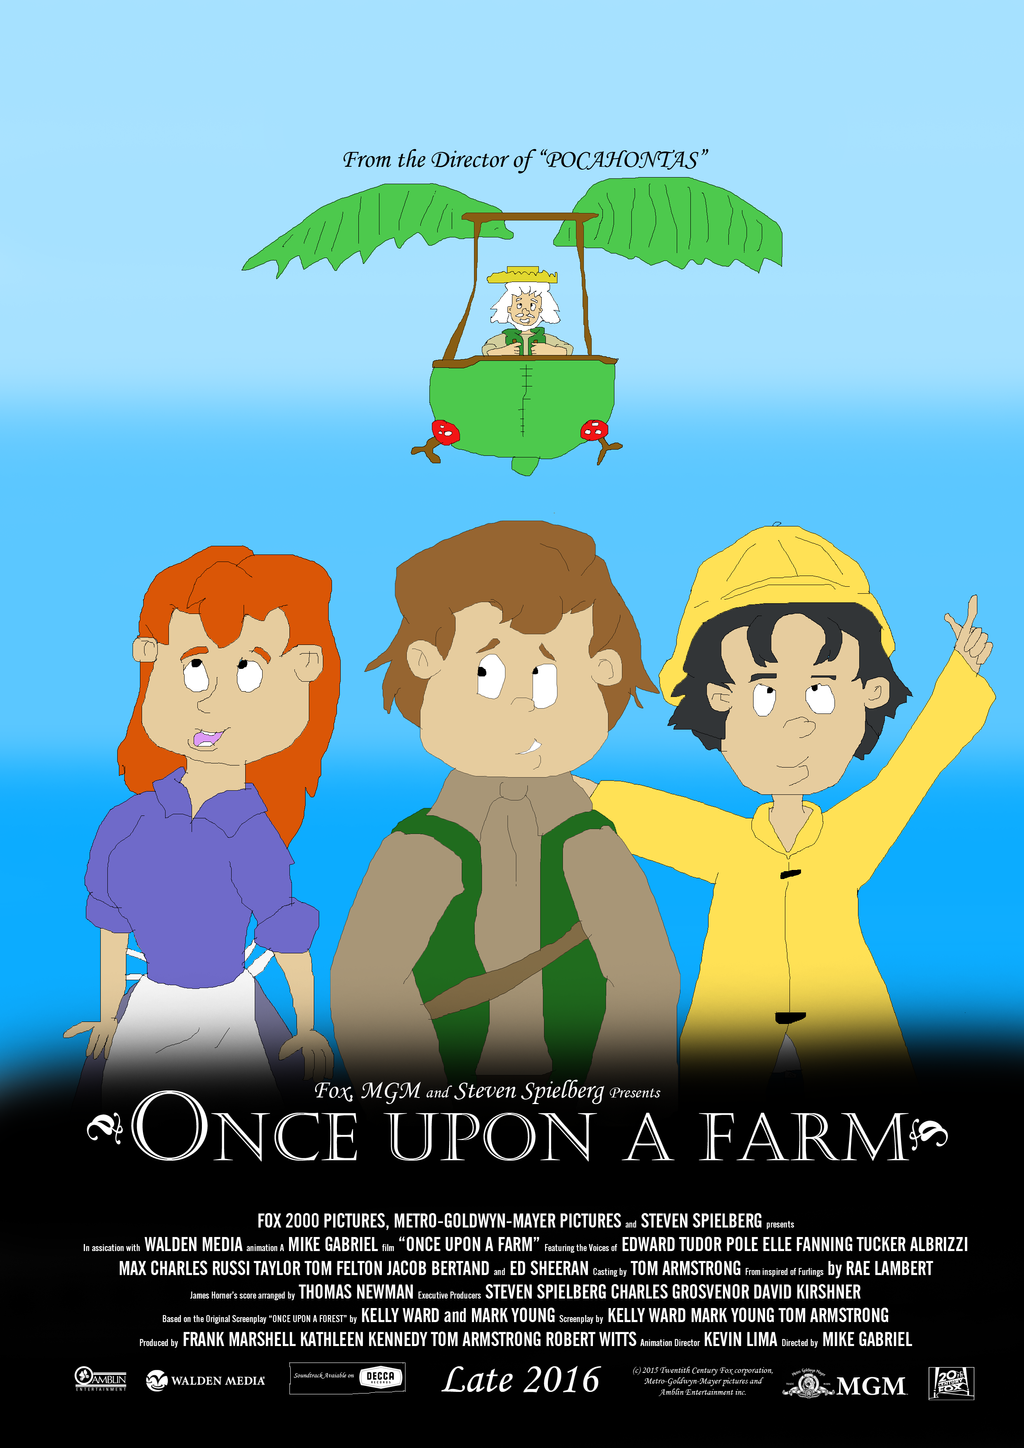 Once Upon a Farm poster by TomArmstrong20 on DeviantArt